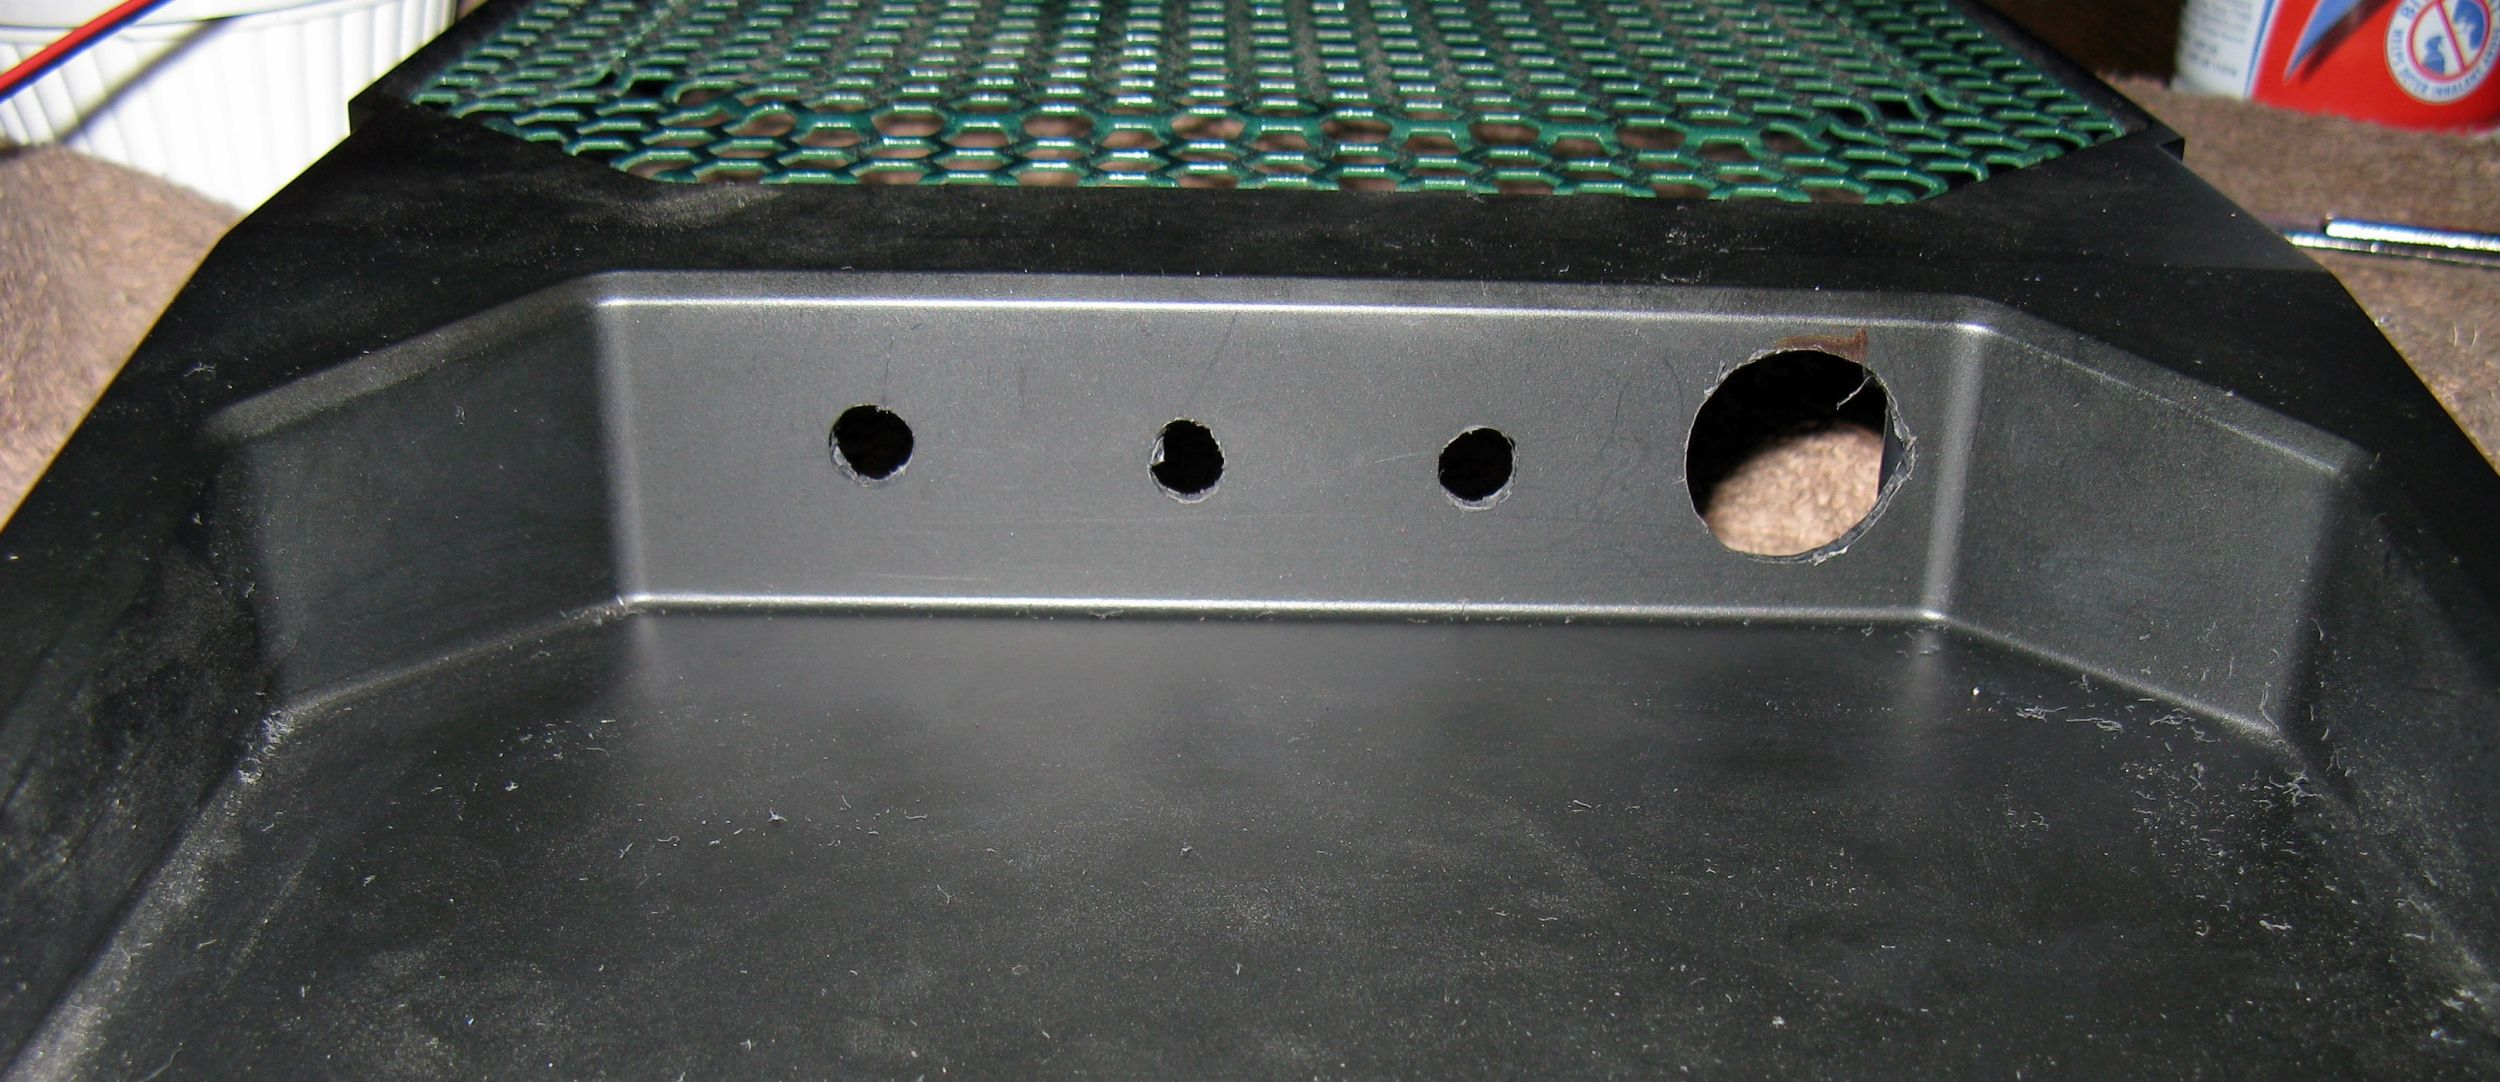 fan control and lighting hole cuts